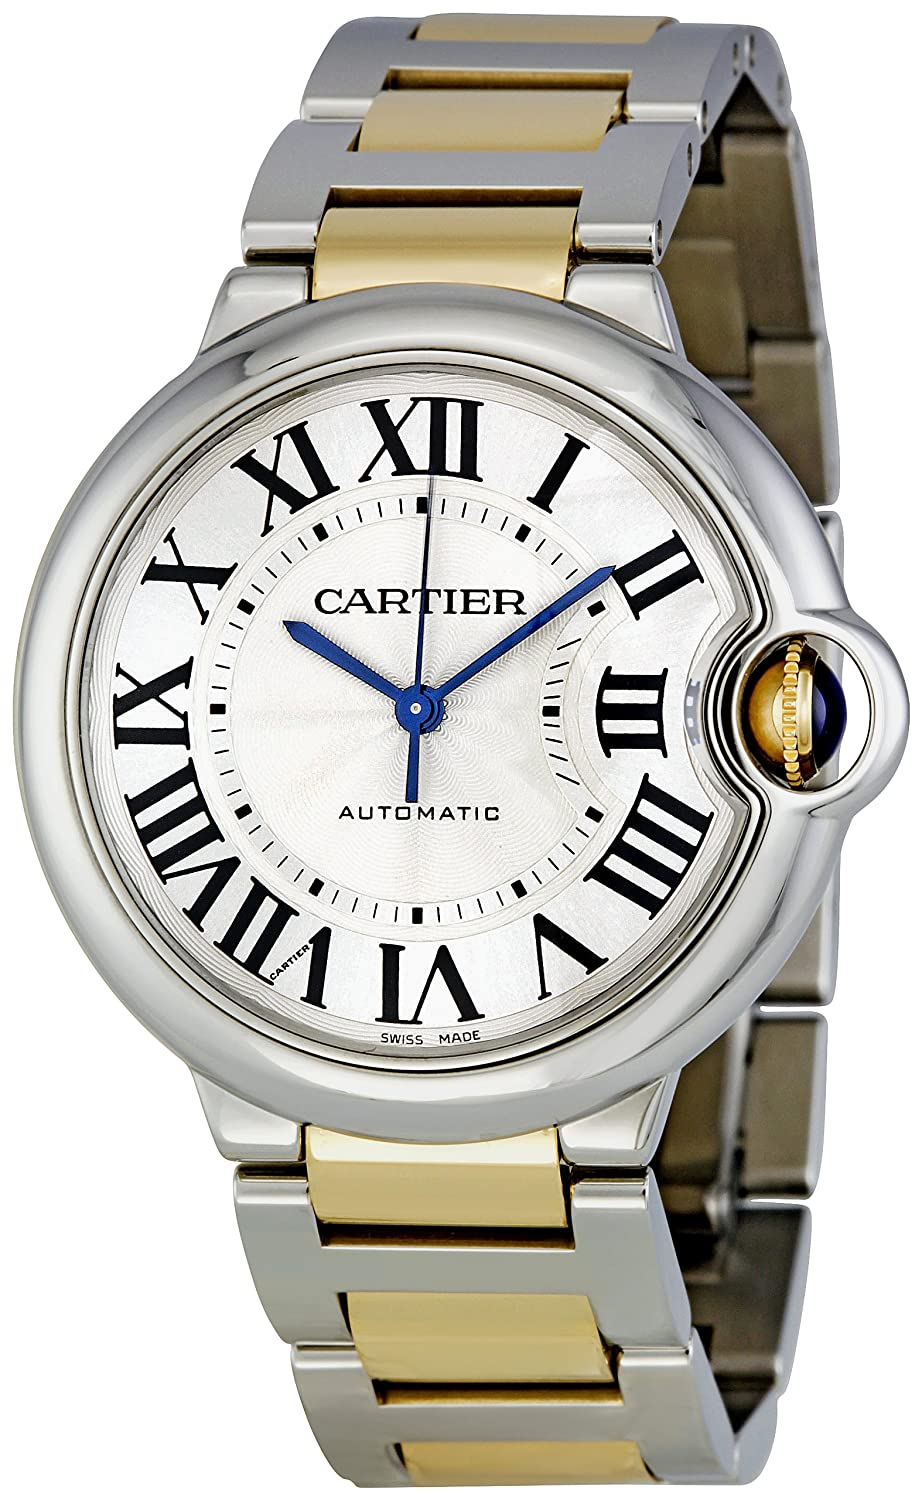 Unique Cartier Watches For Men: Ballon Bleu Steel and 18kt Gold Watch